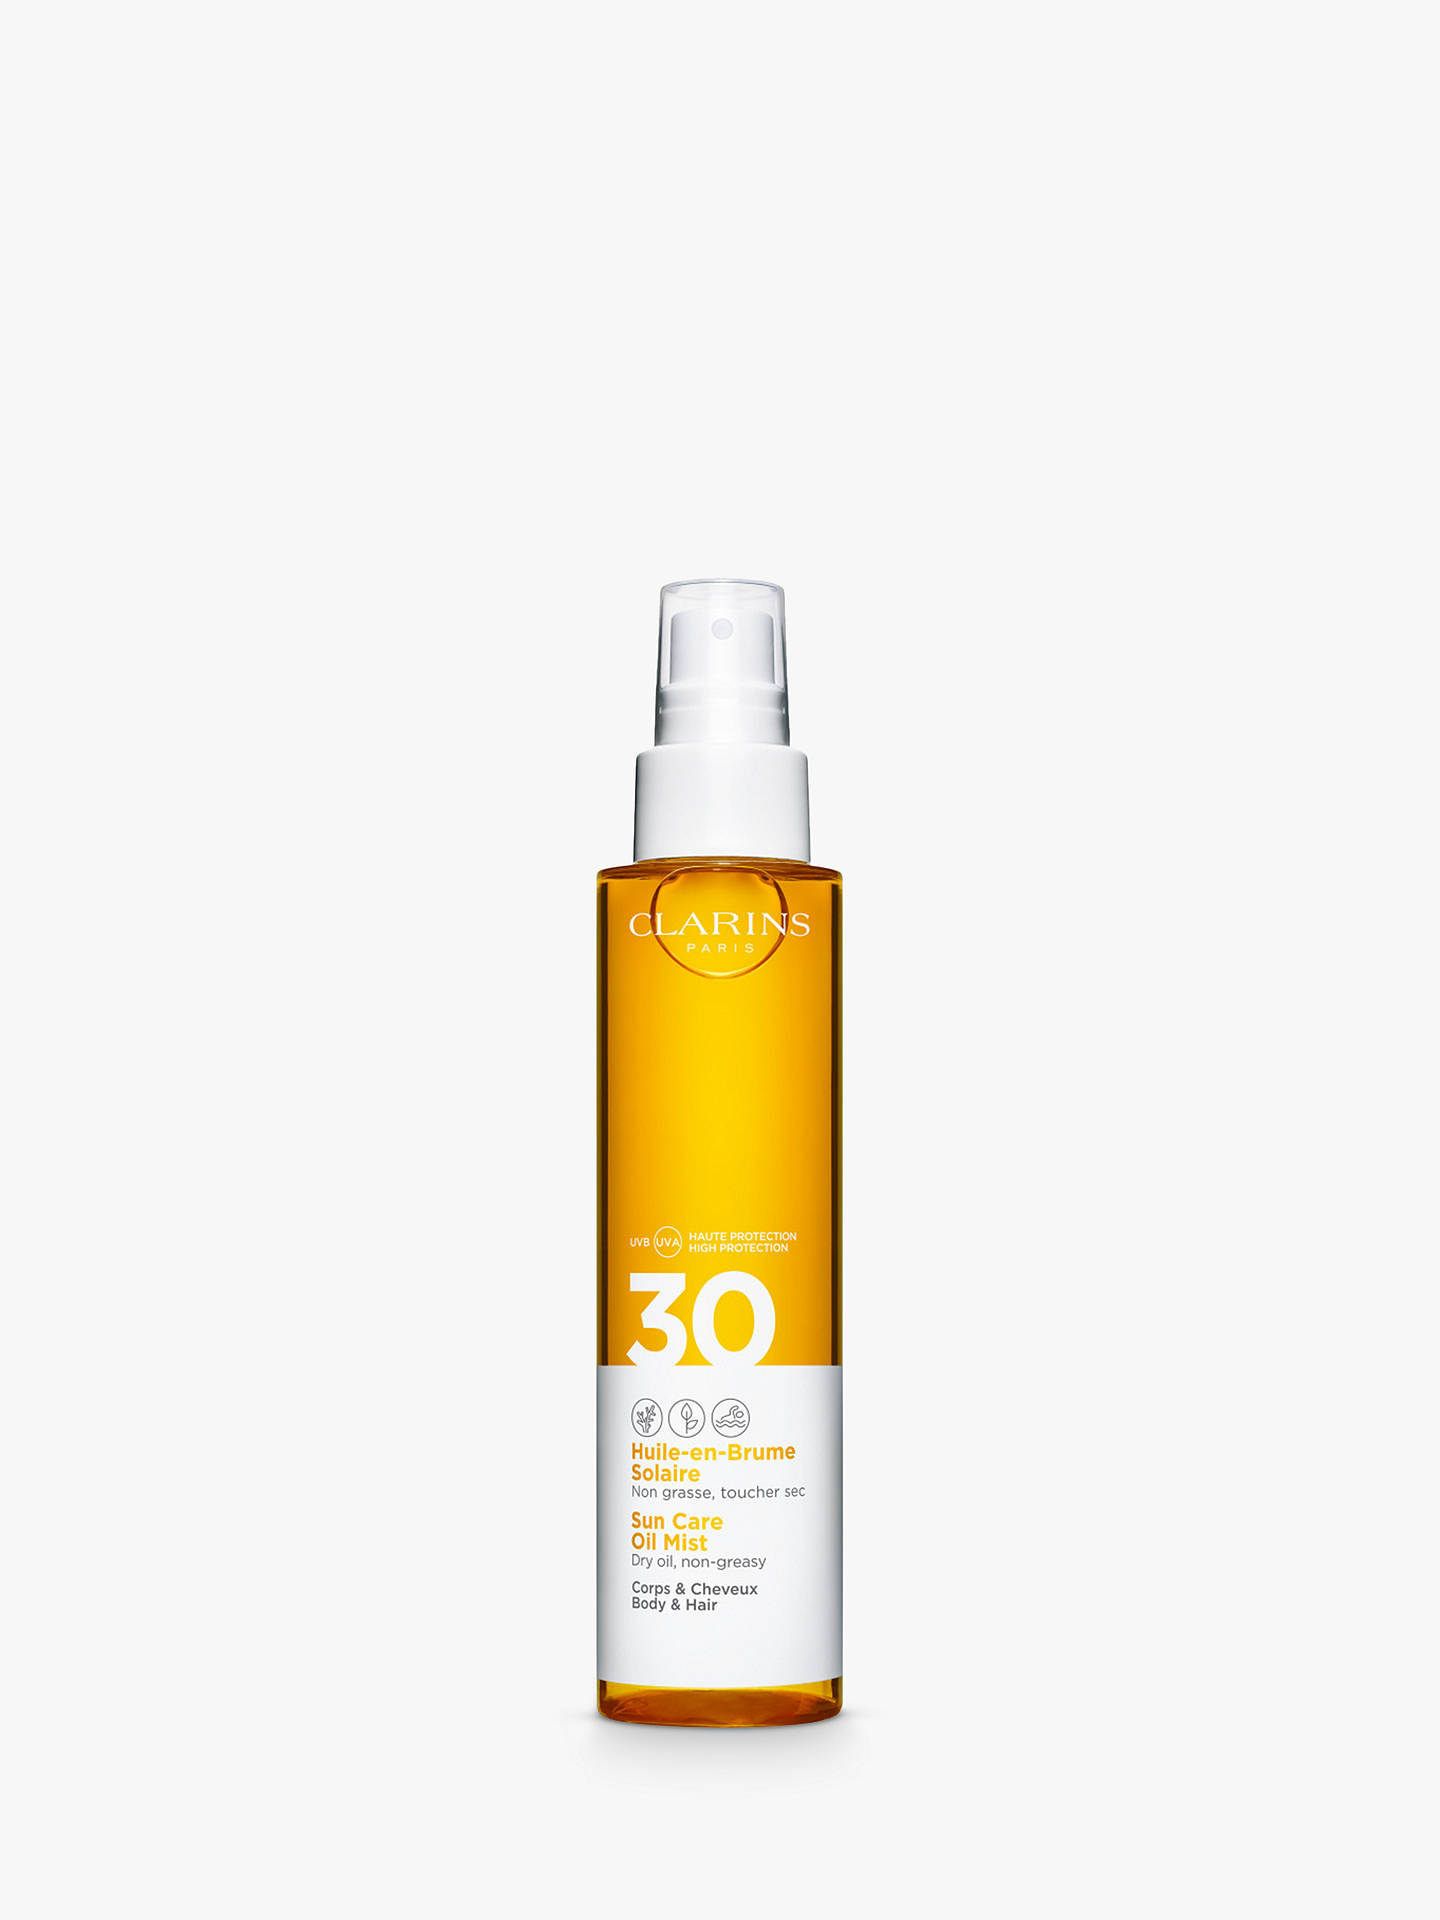 Buy Clarins Sun Care Oil Mist for Body and Hair SPF 30, 150ml Online at johnlewis.com